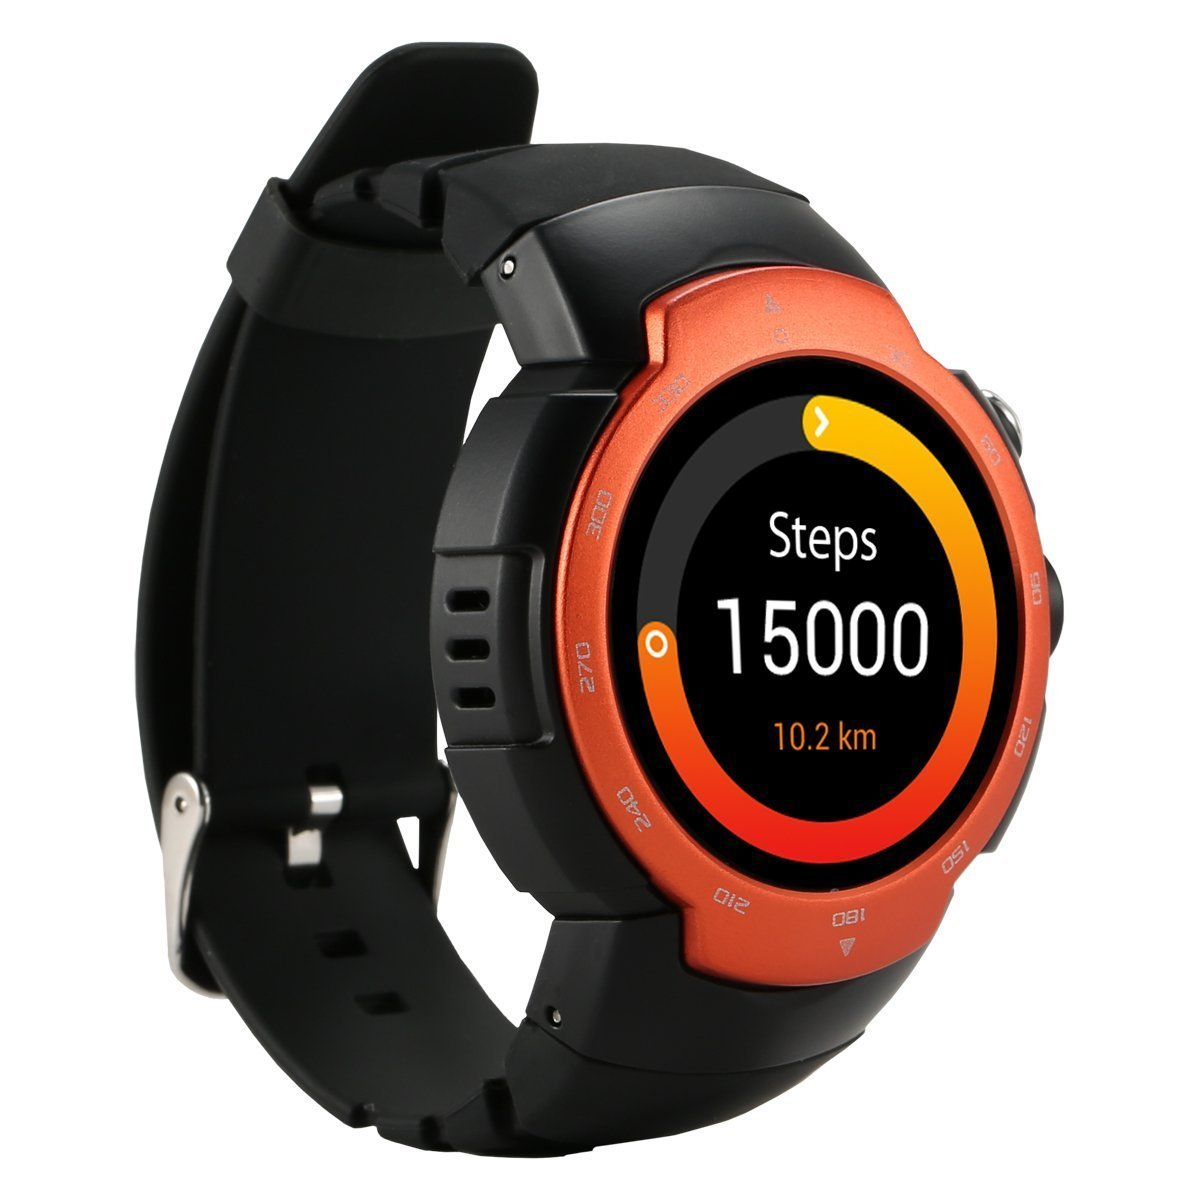 Z9 3G wifi Smart Watch phone Android 5.1 OS MTK6580 Quad Core Support google map Heart Rate Monitoring